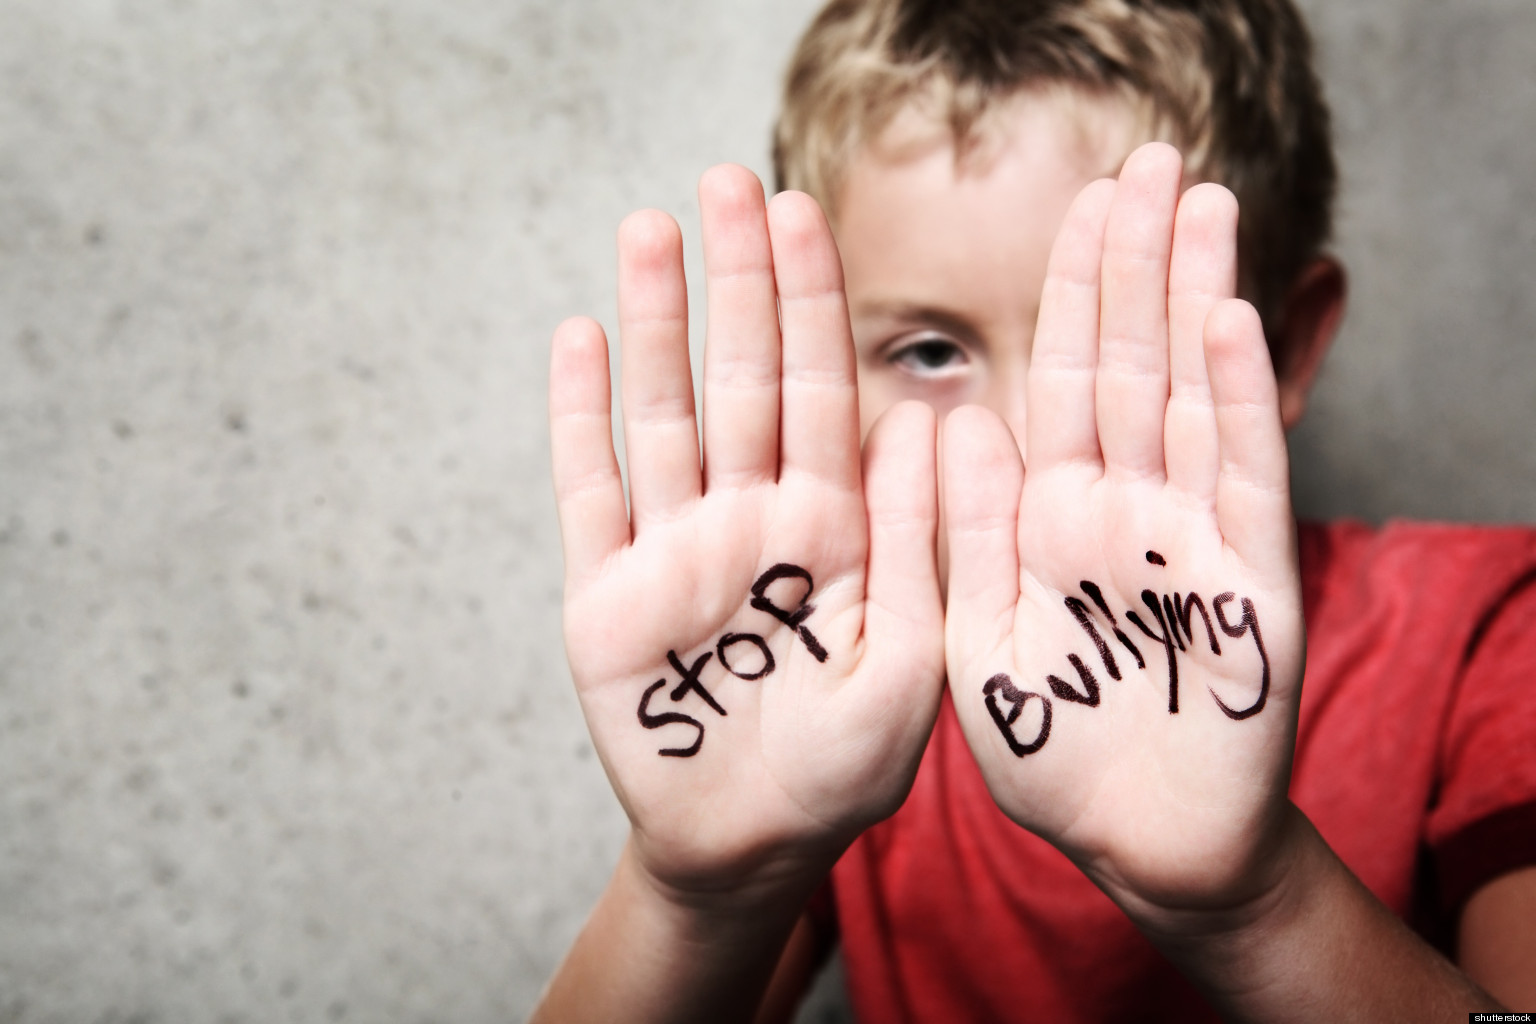 Want to help your kid to handle bullying